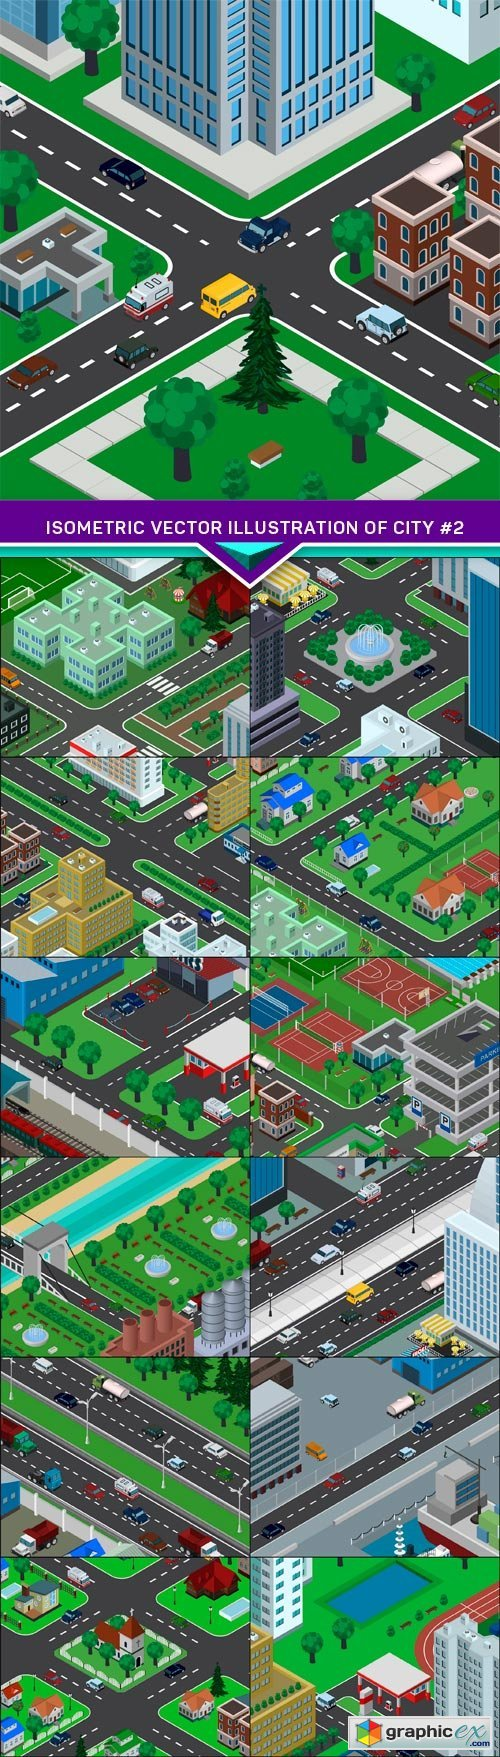 Isometric vector illustration of city #2 13X EPS